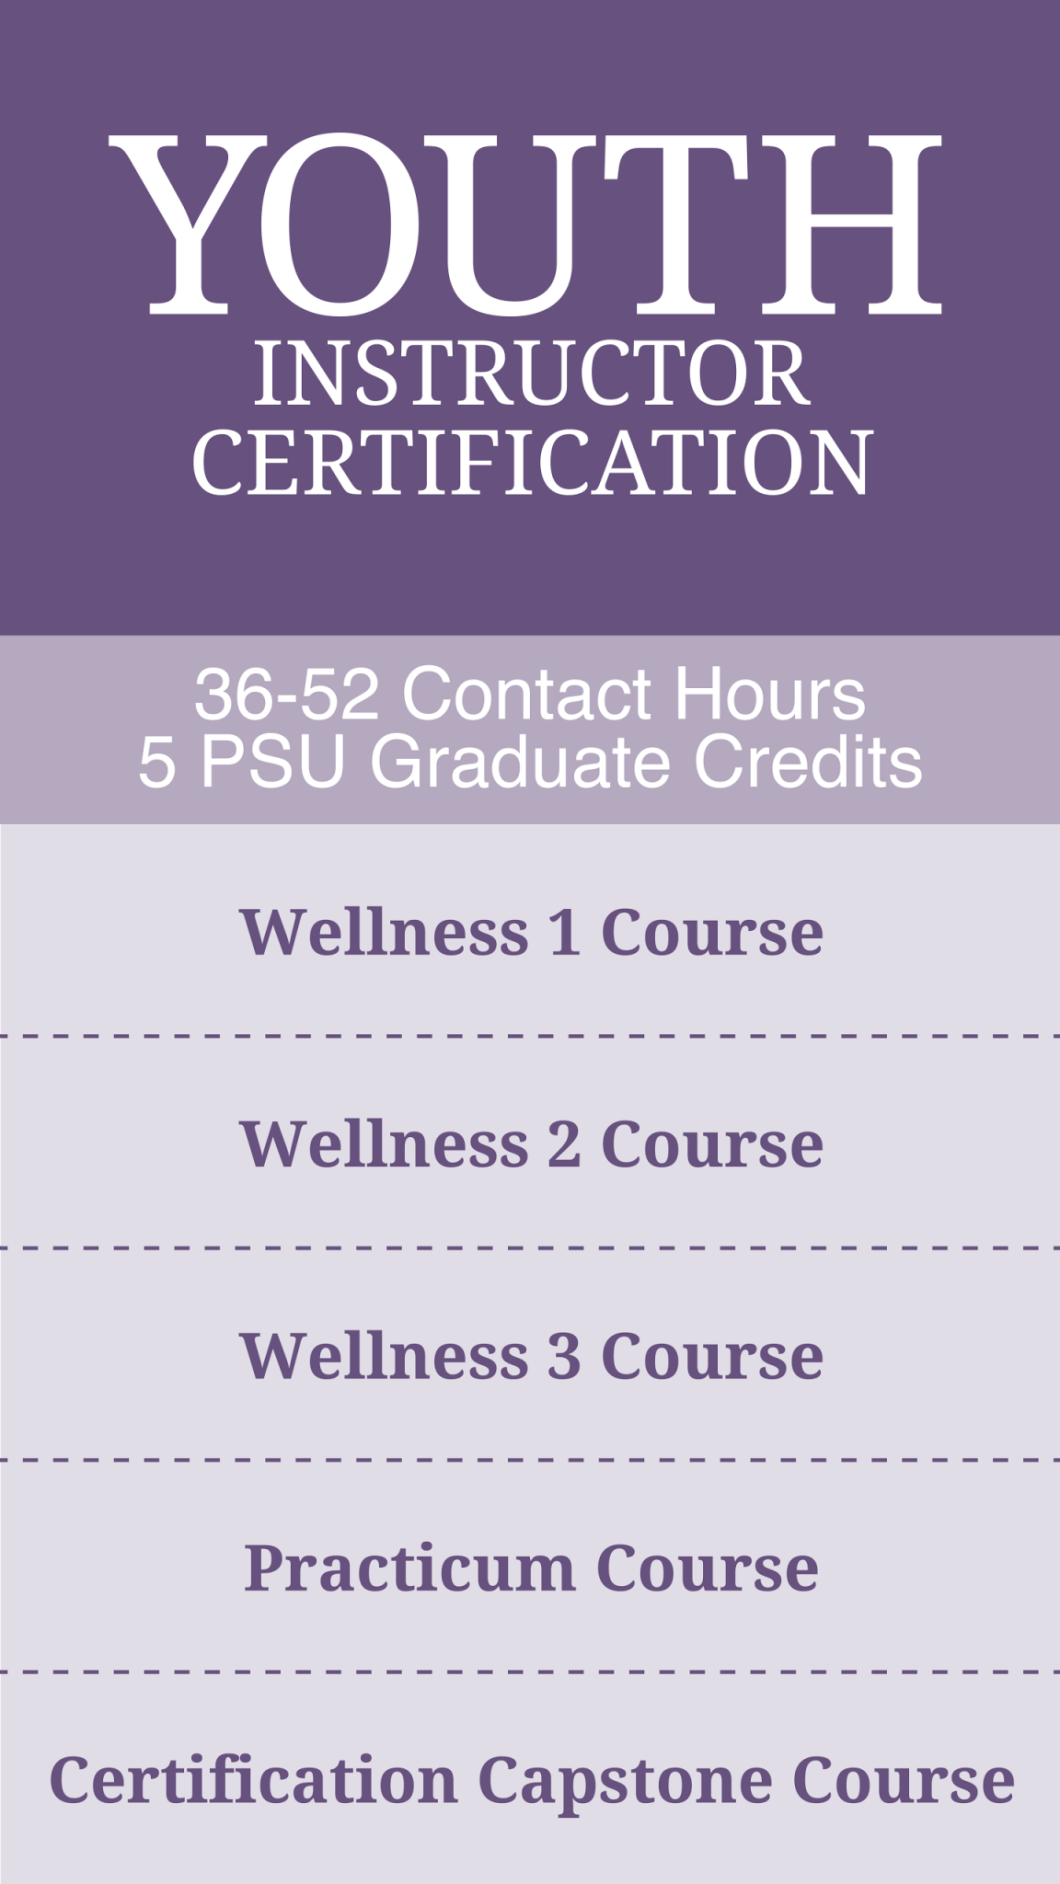 Yoga Alliance Certification Requirements | Spotgymyoga.org